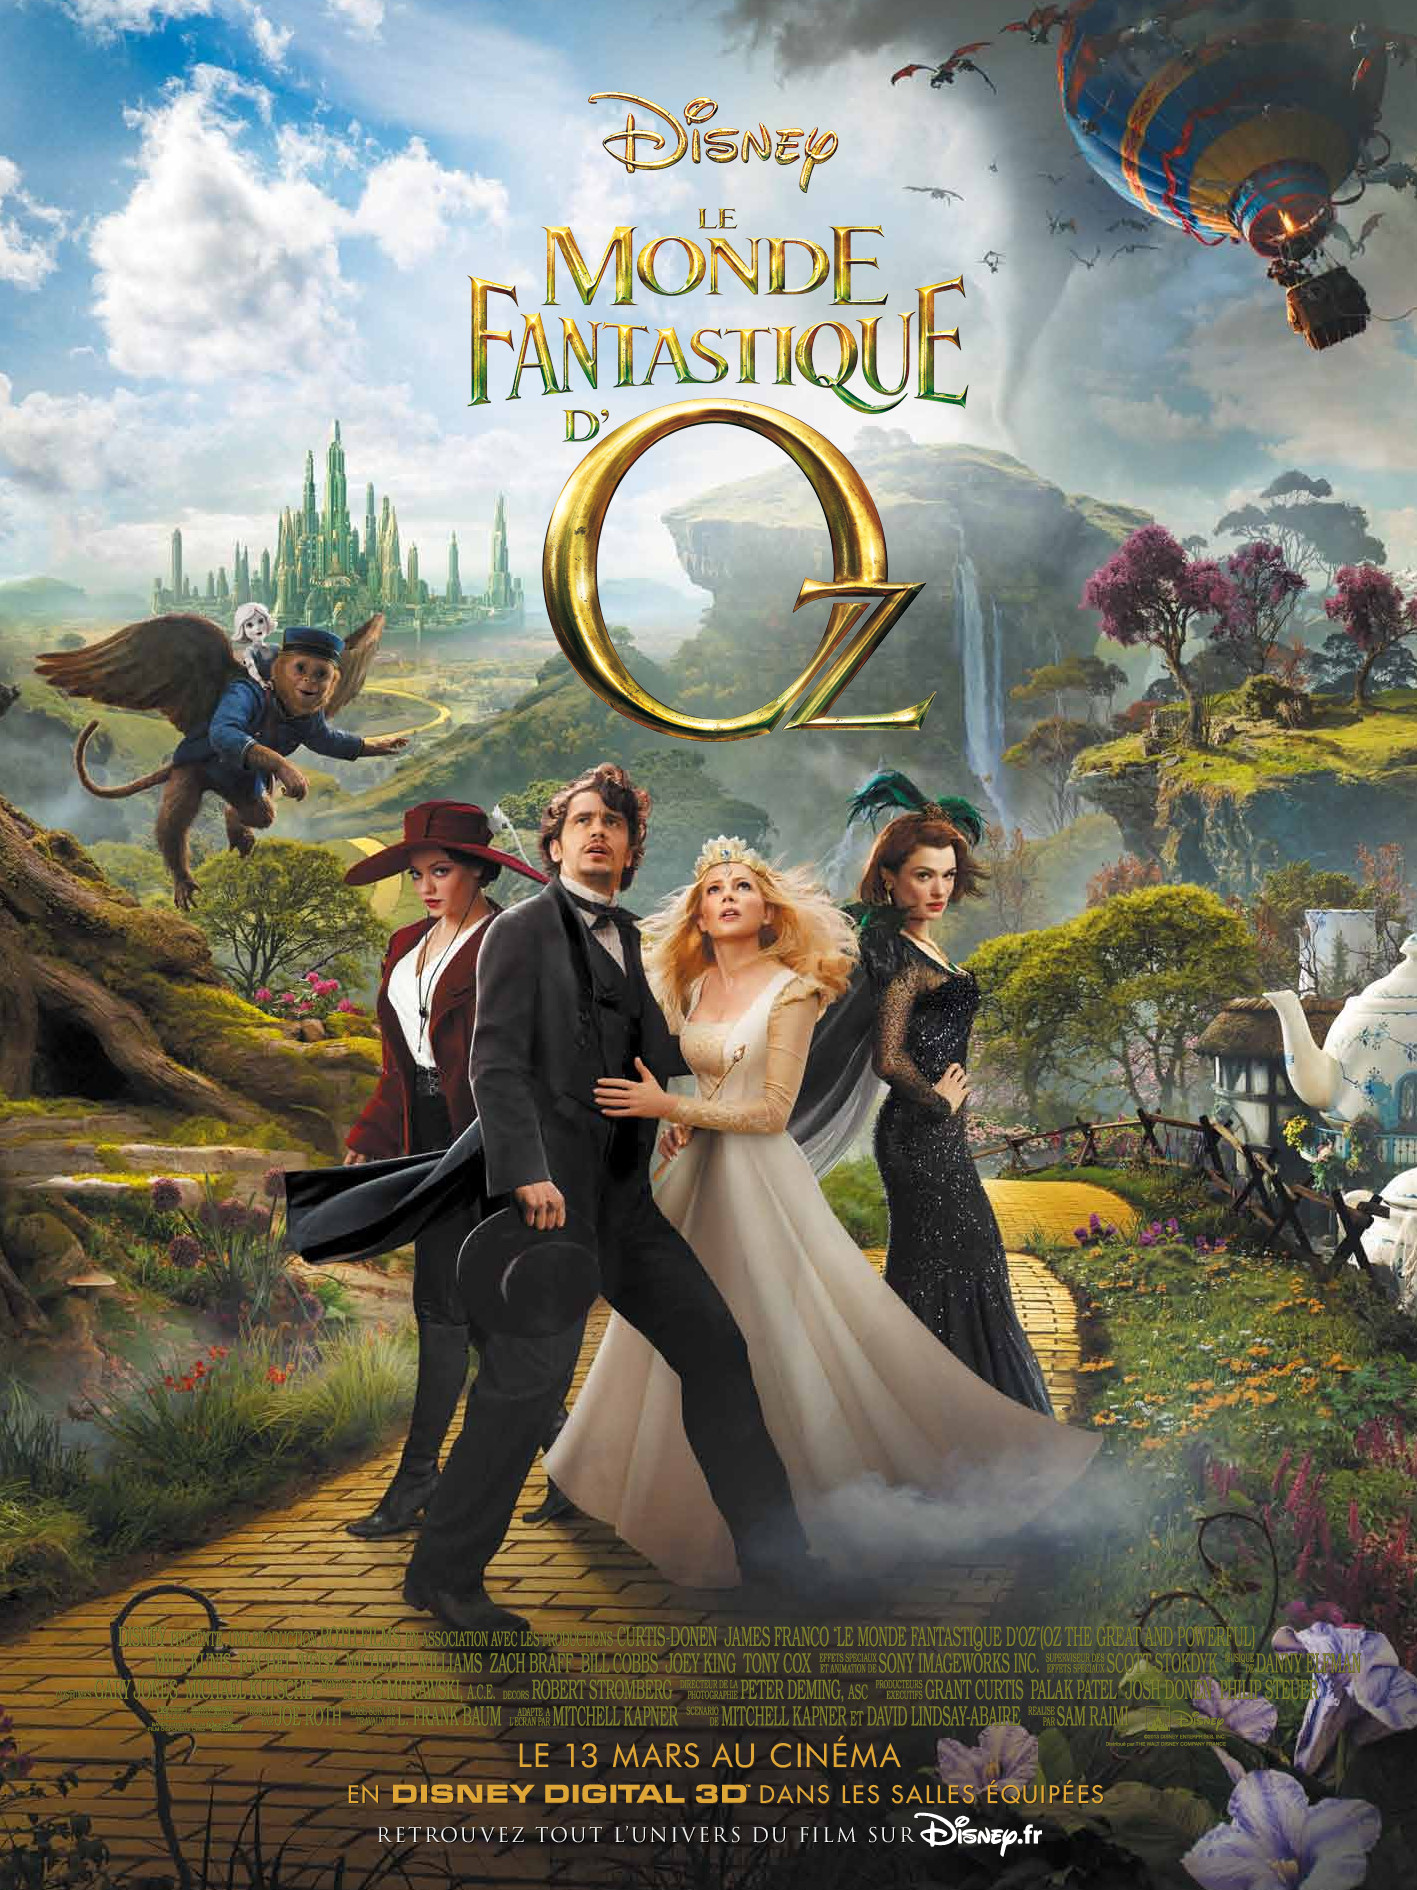 walt disney company walt disney pictures affiche monde fantastique oz poster oz great owerful